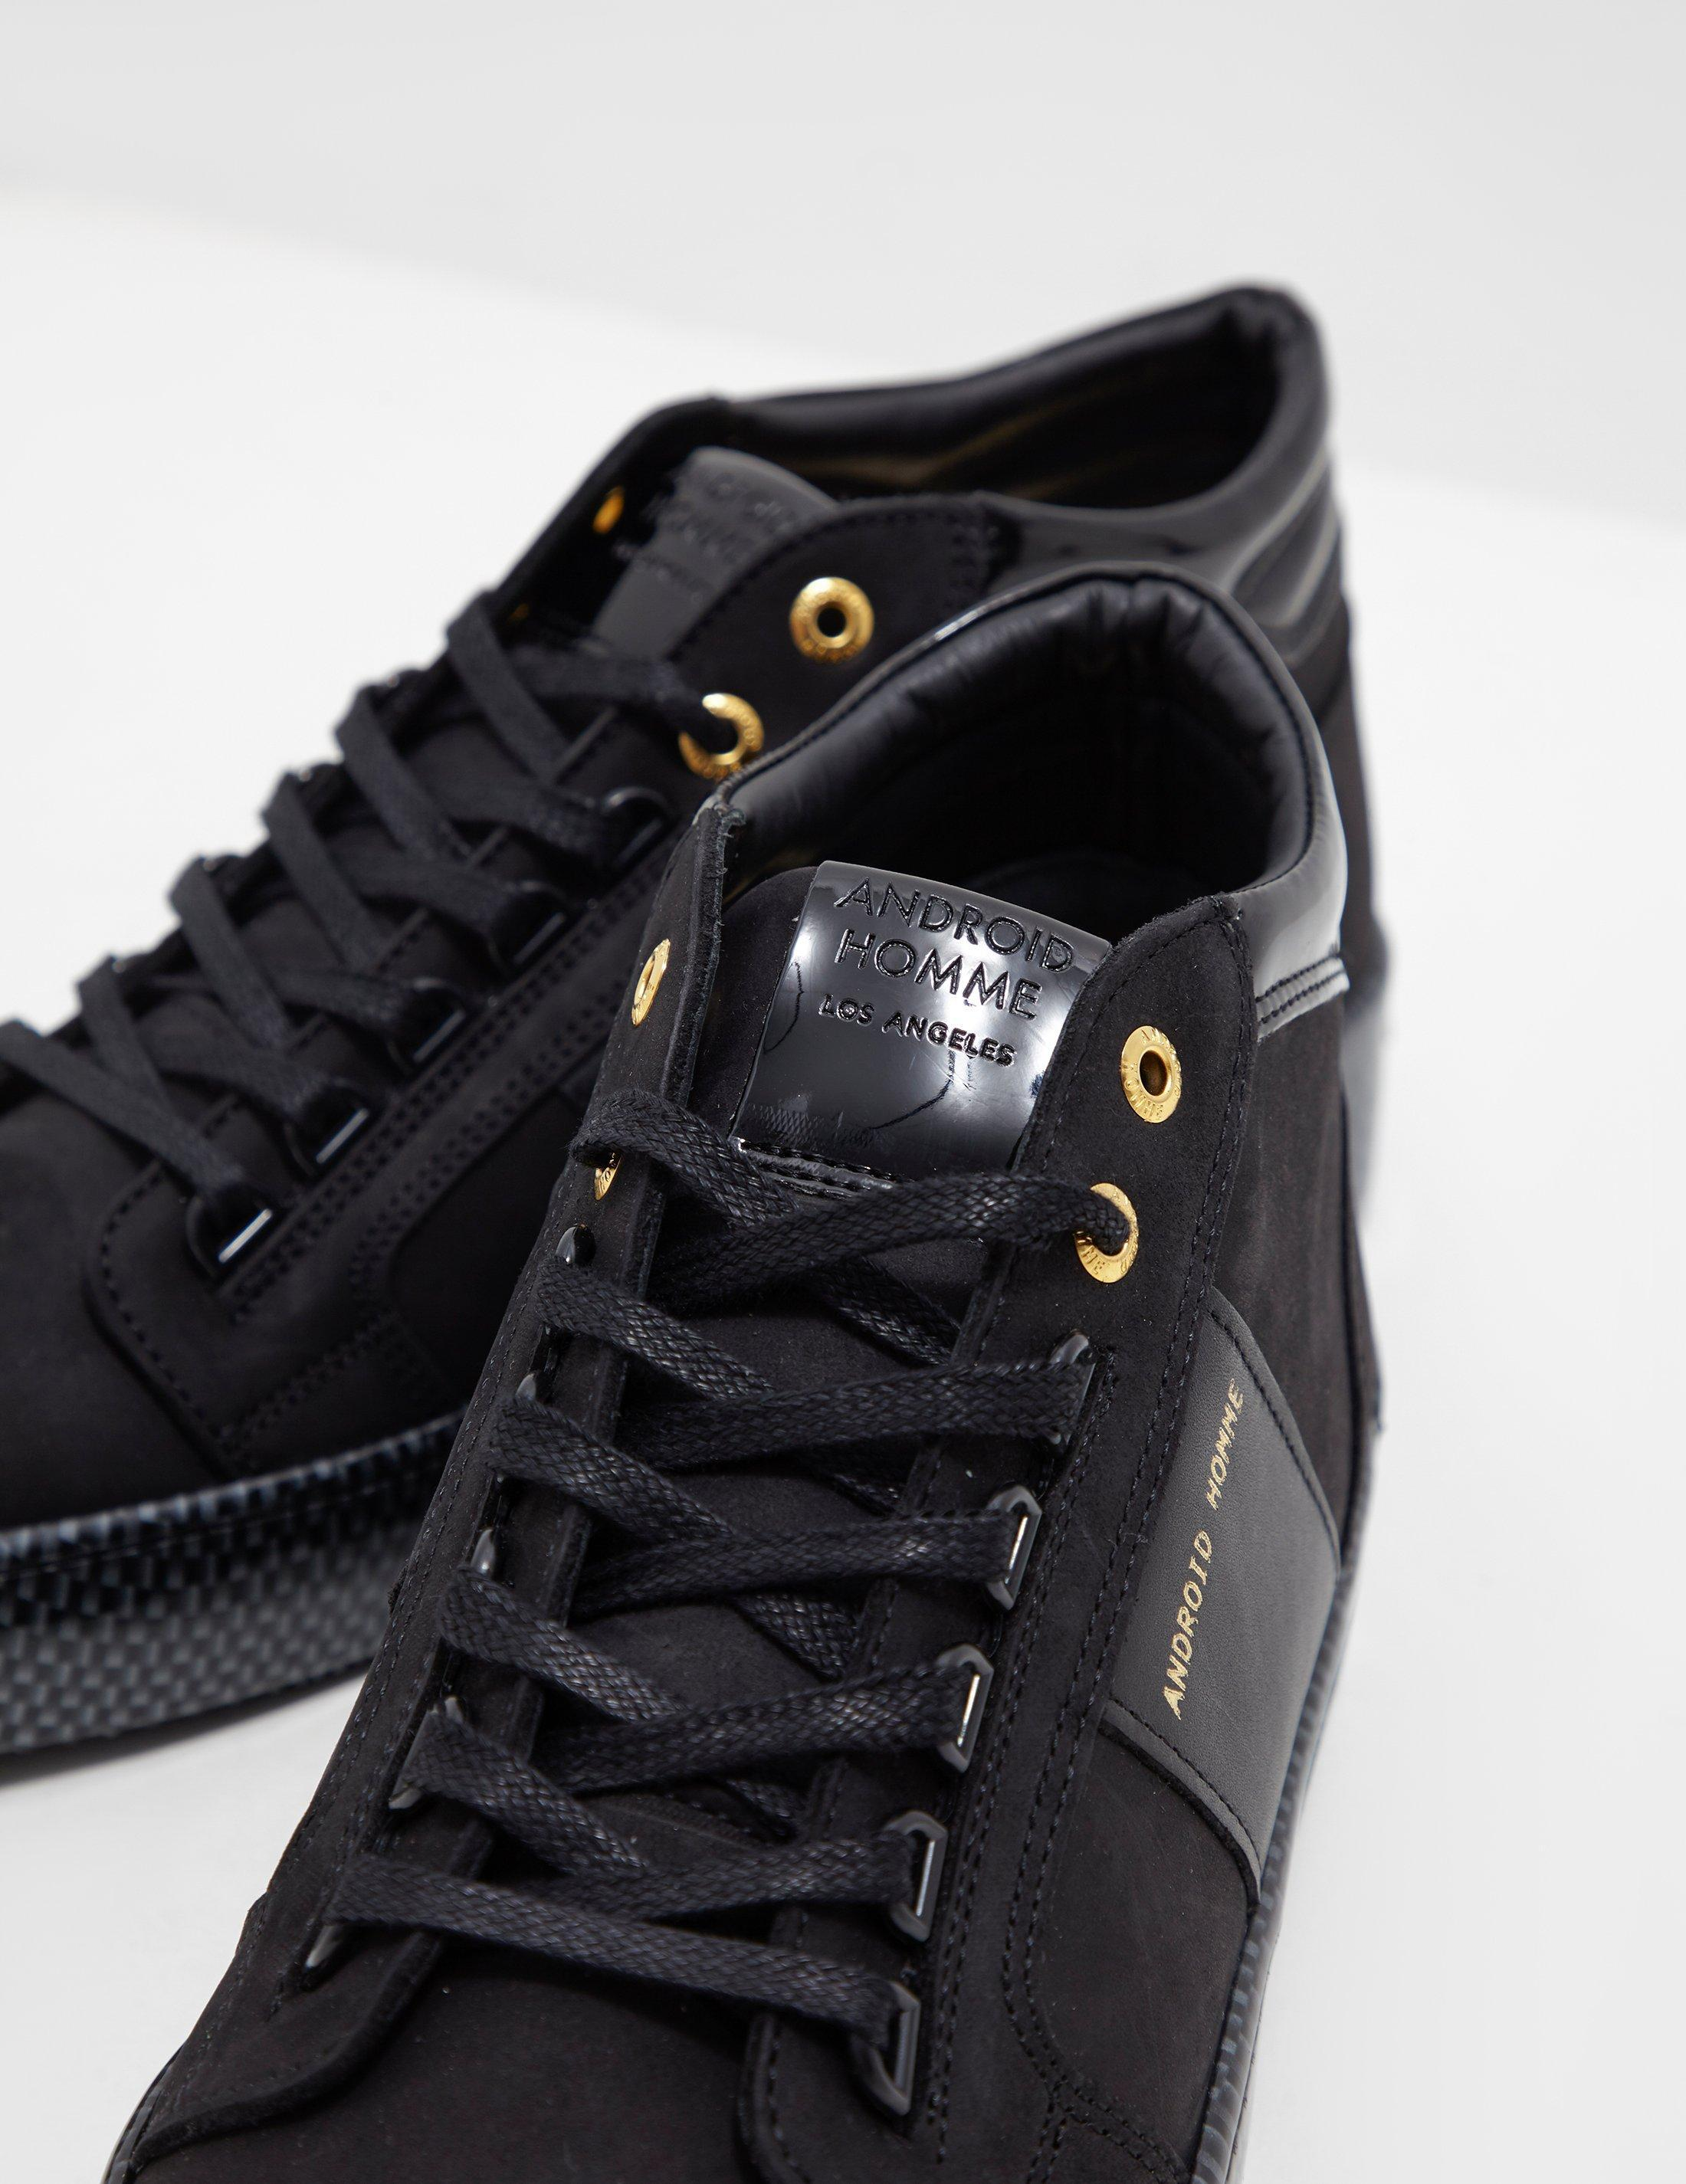 b5a376261c1 Lyst - Android Homme Propulsion Black in Black for Men